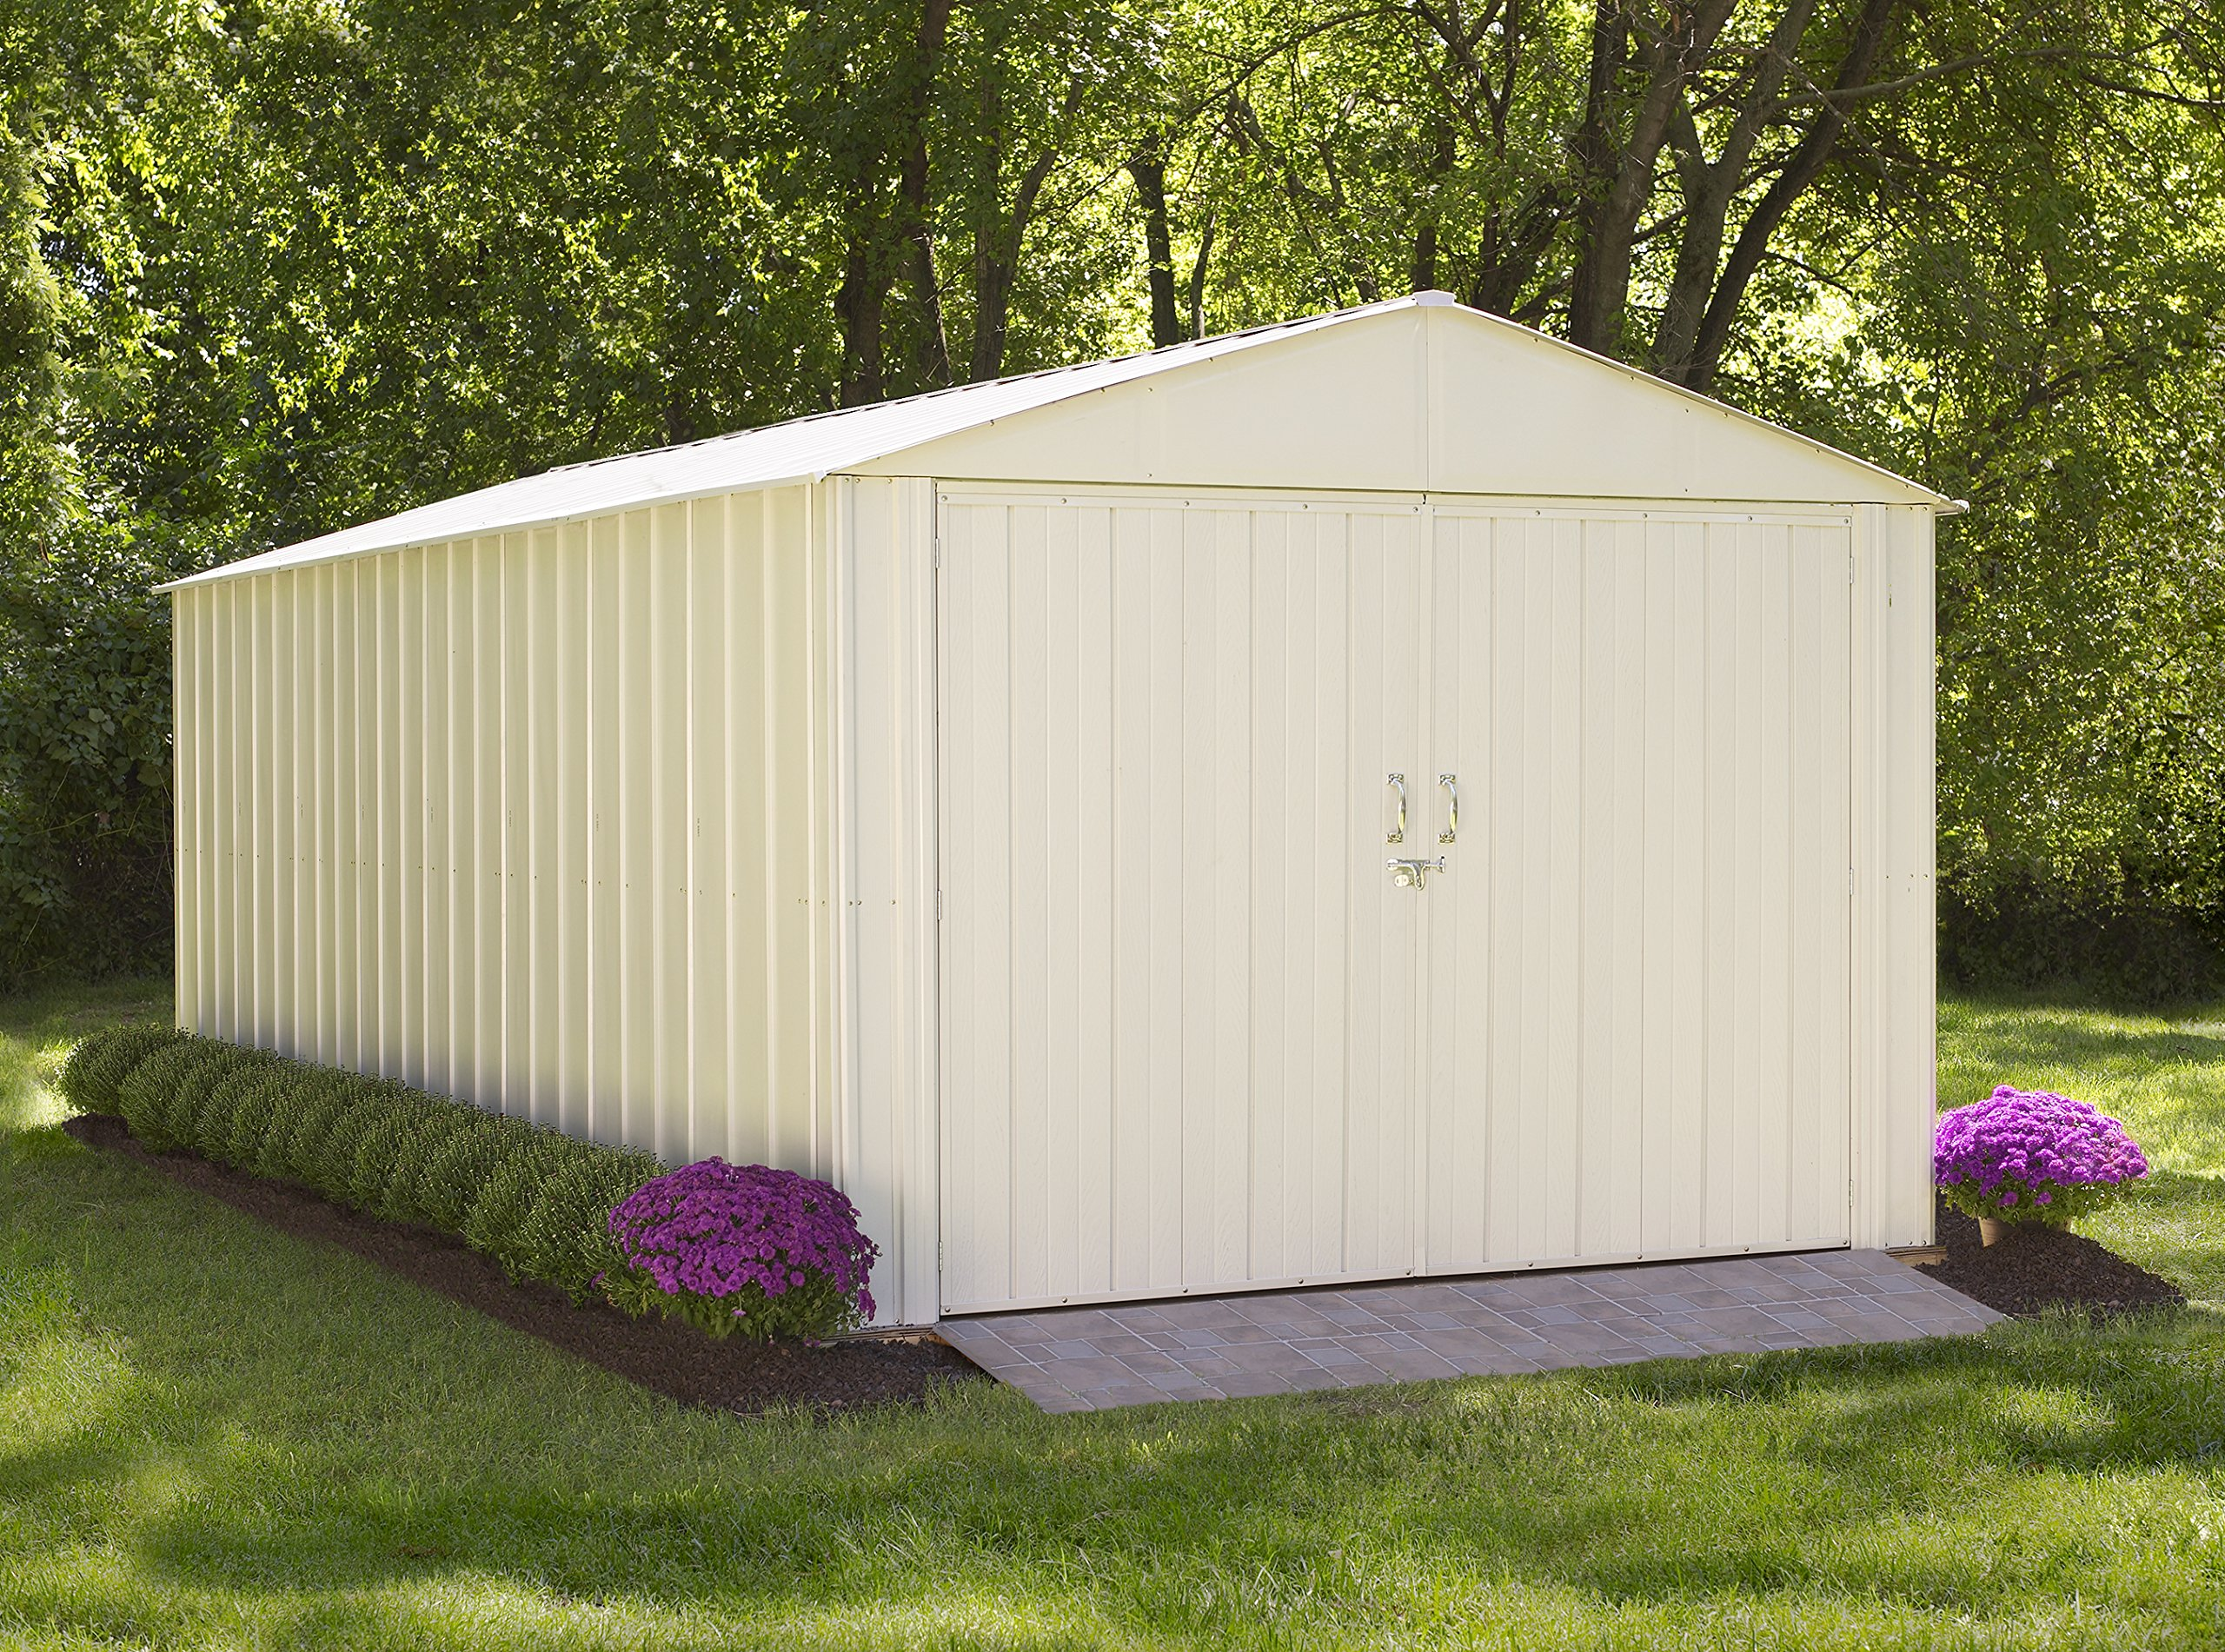 Commander Hot Dipped Galvanized Steel, Eggshell, High Gable, 71.3'' Wall Height, Extra Wide Swing Doors(3,0 x 6,1 m)